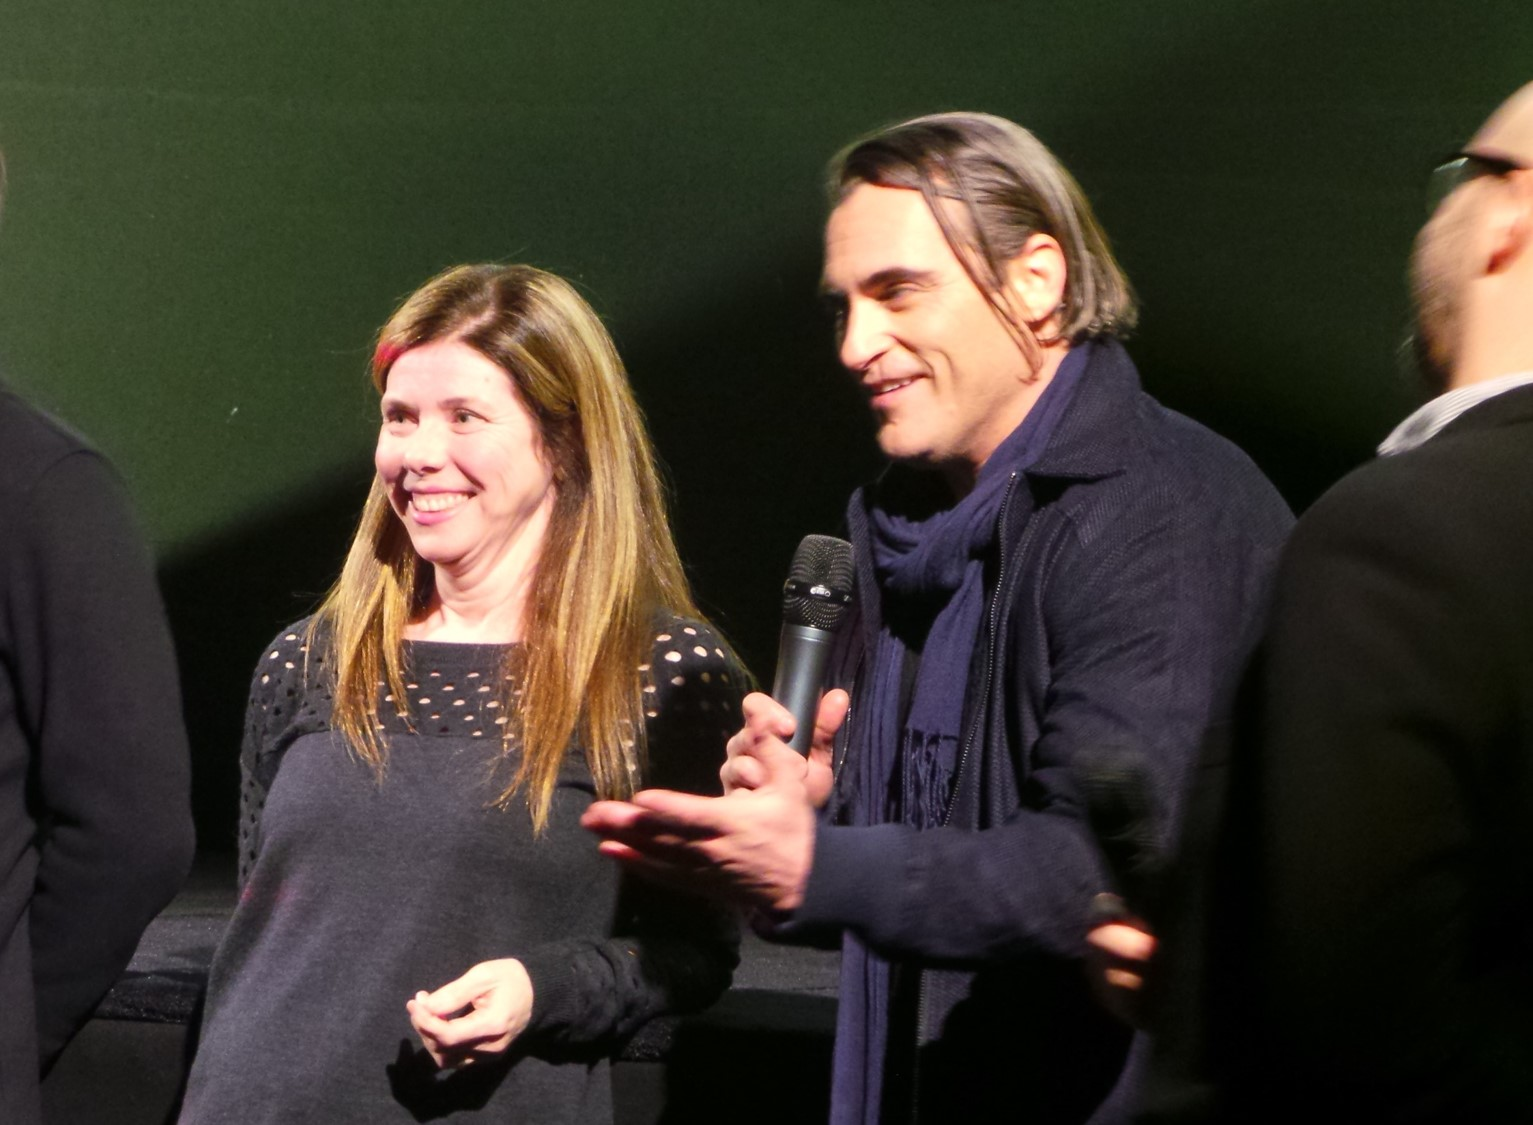 INHERENT VICE - BIS Avant-première Paris Arlequin Paul Thomas Anderson Joaquin Phoenix 6 - copyright Go with the Blog